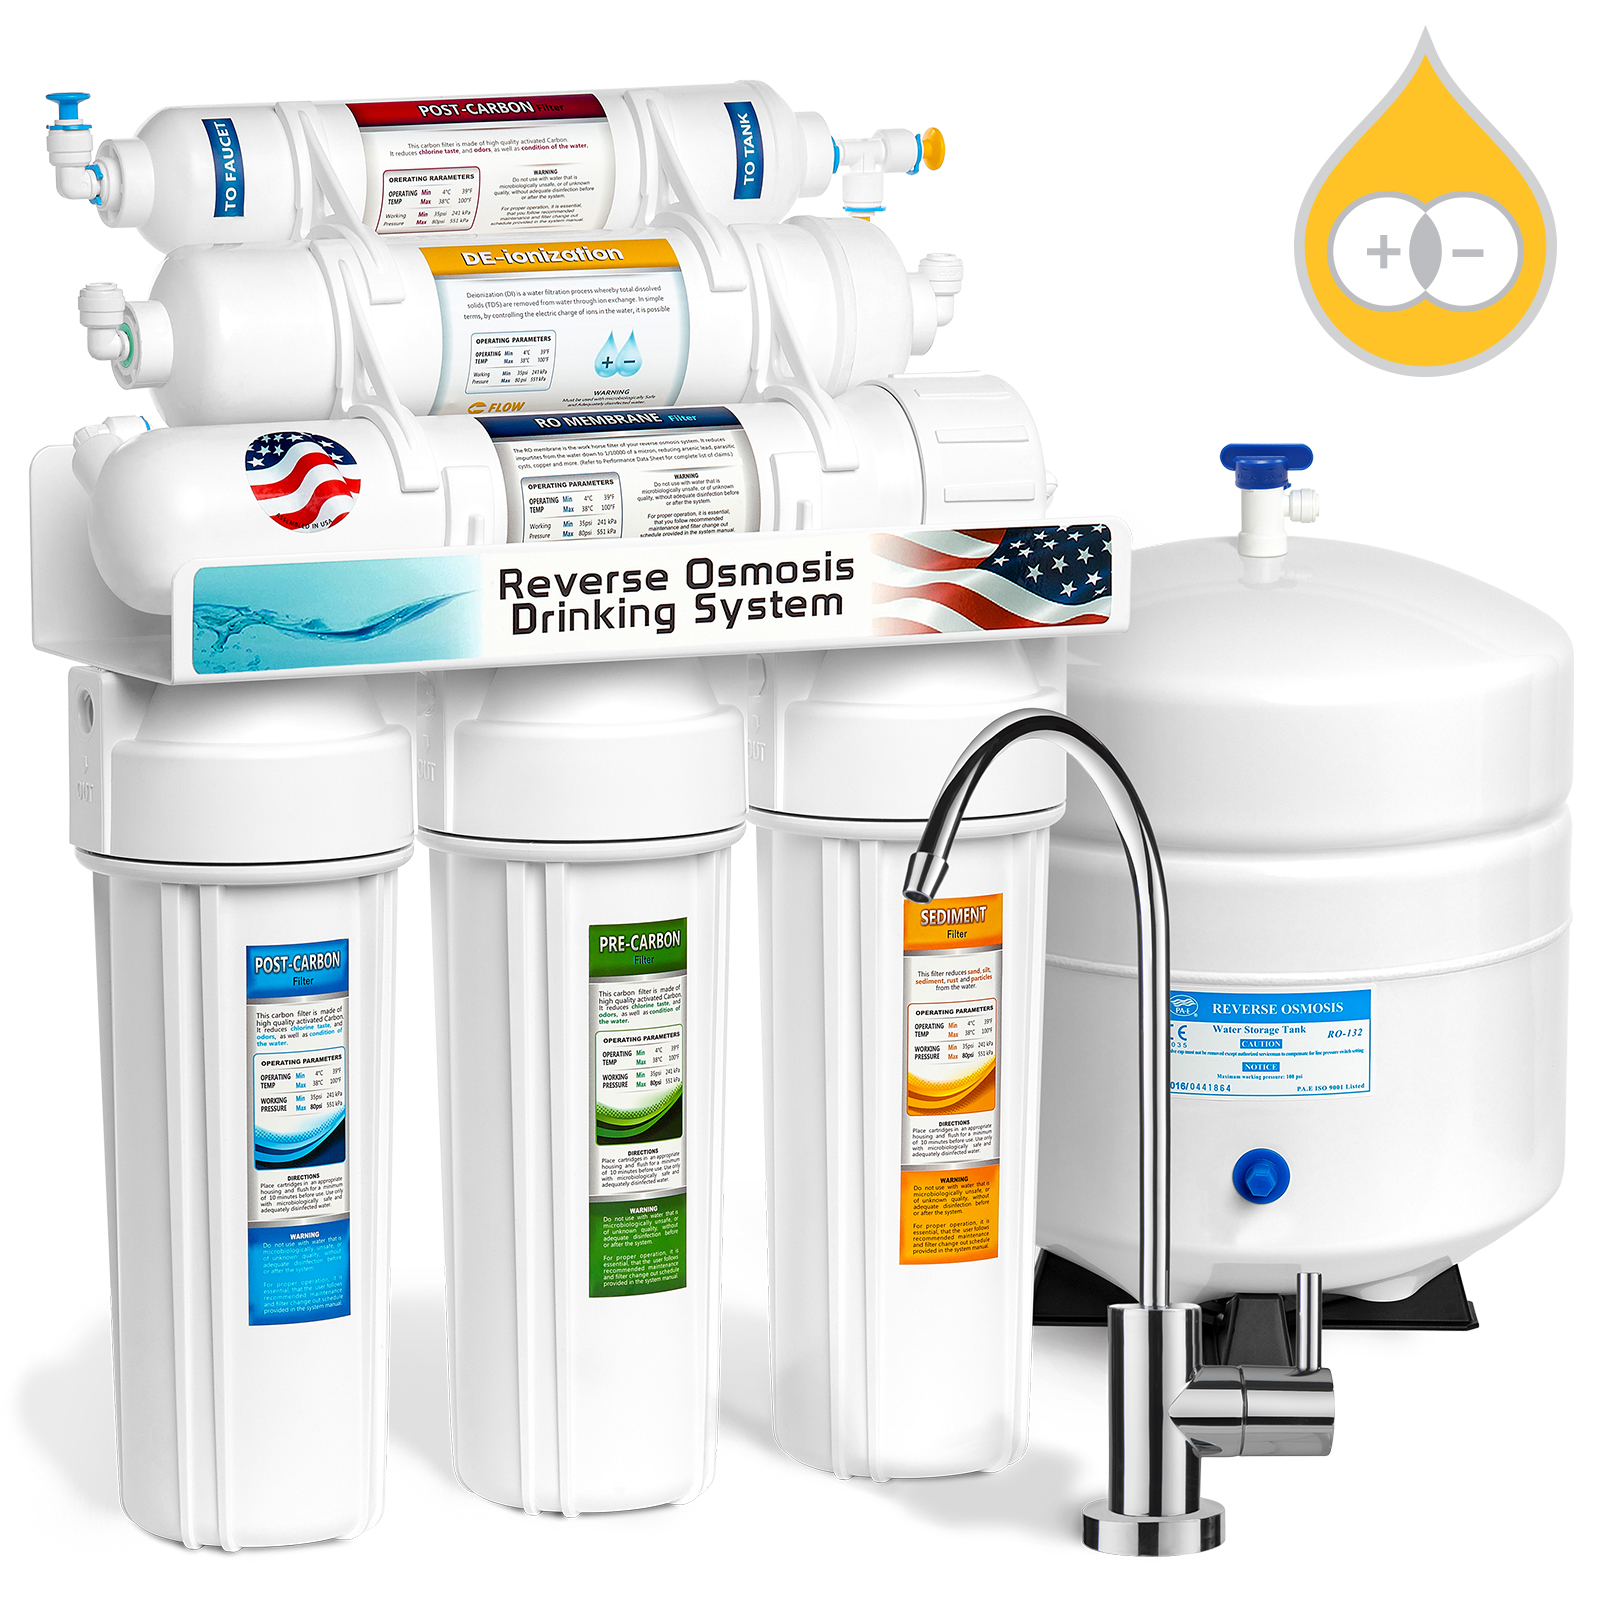 Express Water 6-Stage Reverse Osmosis Water Filter System RO + DI Deionization Mixed Bed Resin 50 GPD - RODI5M